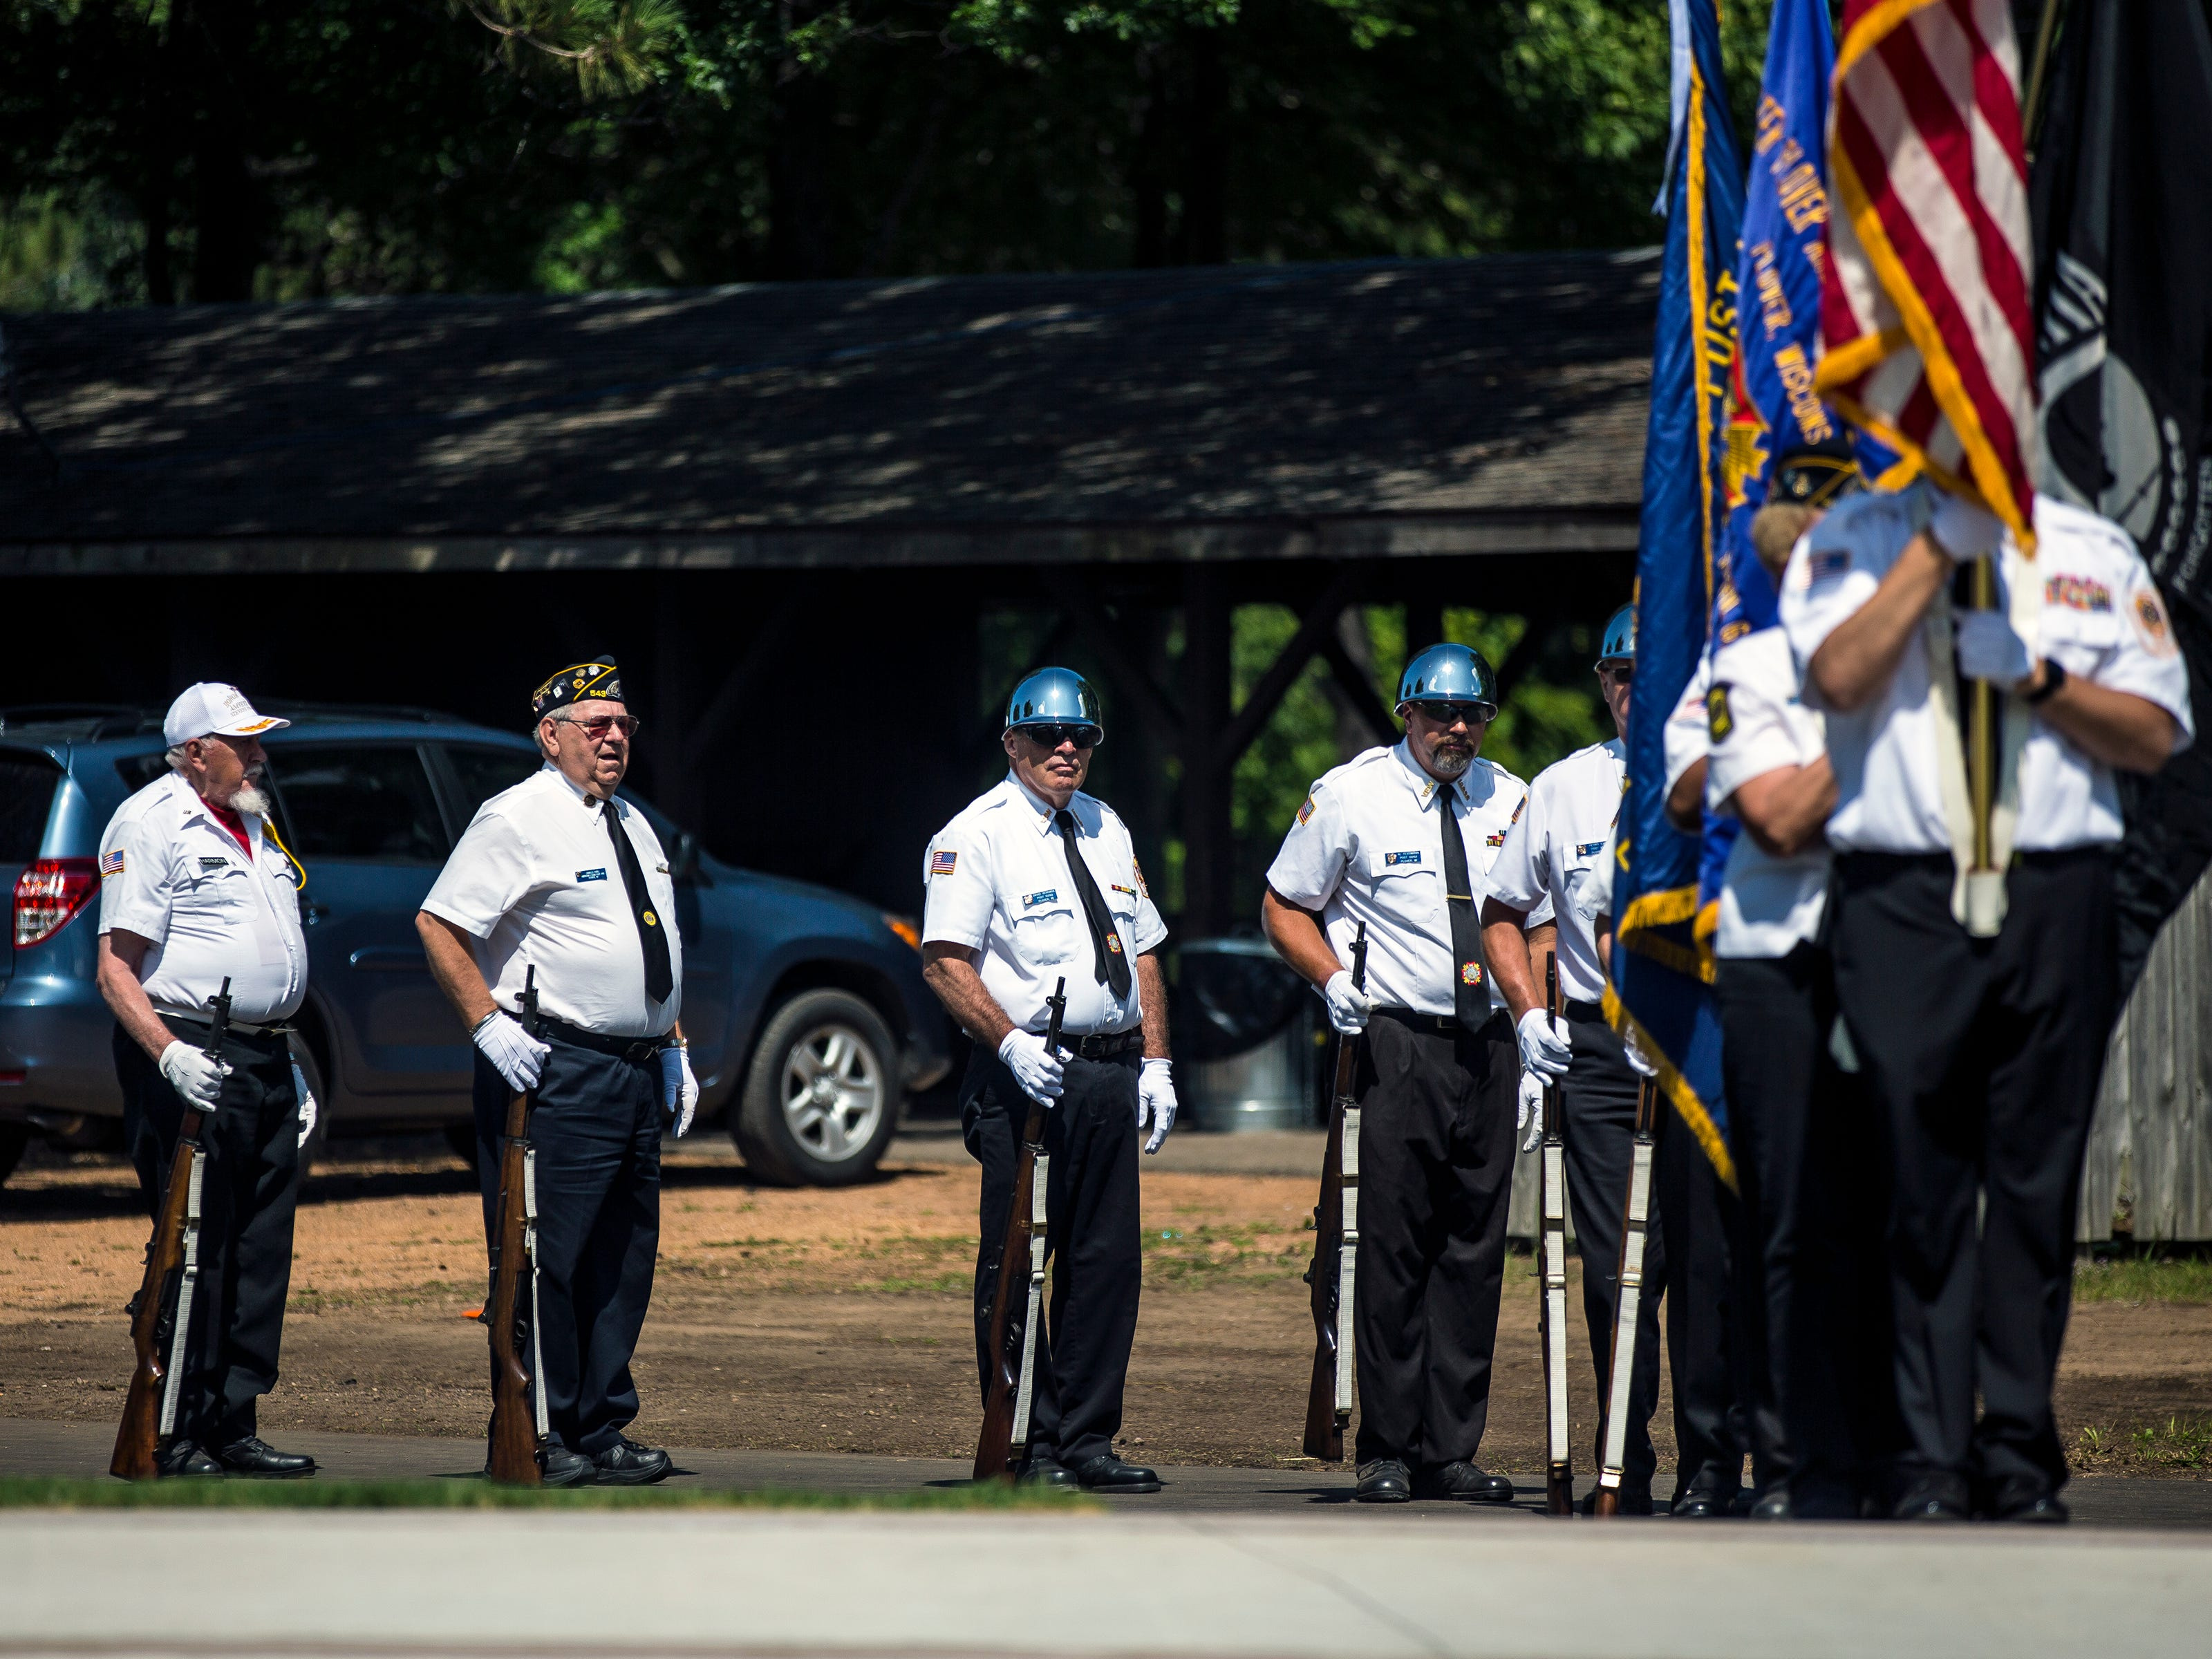 Members of the Plover VFW Post 10262 participate in a ceremony to honor veterans during Celebrate Plover at Lake Pacawa Park in Plover, Wis., July 28, 2018.